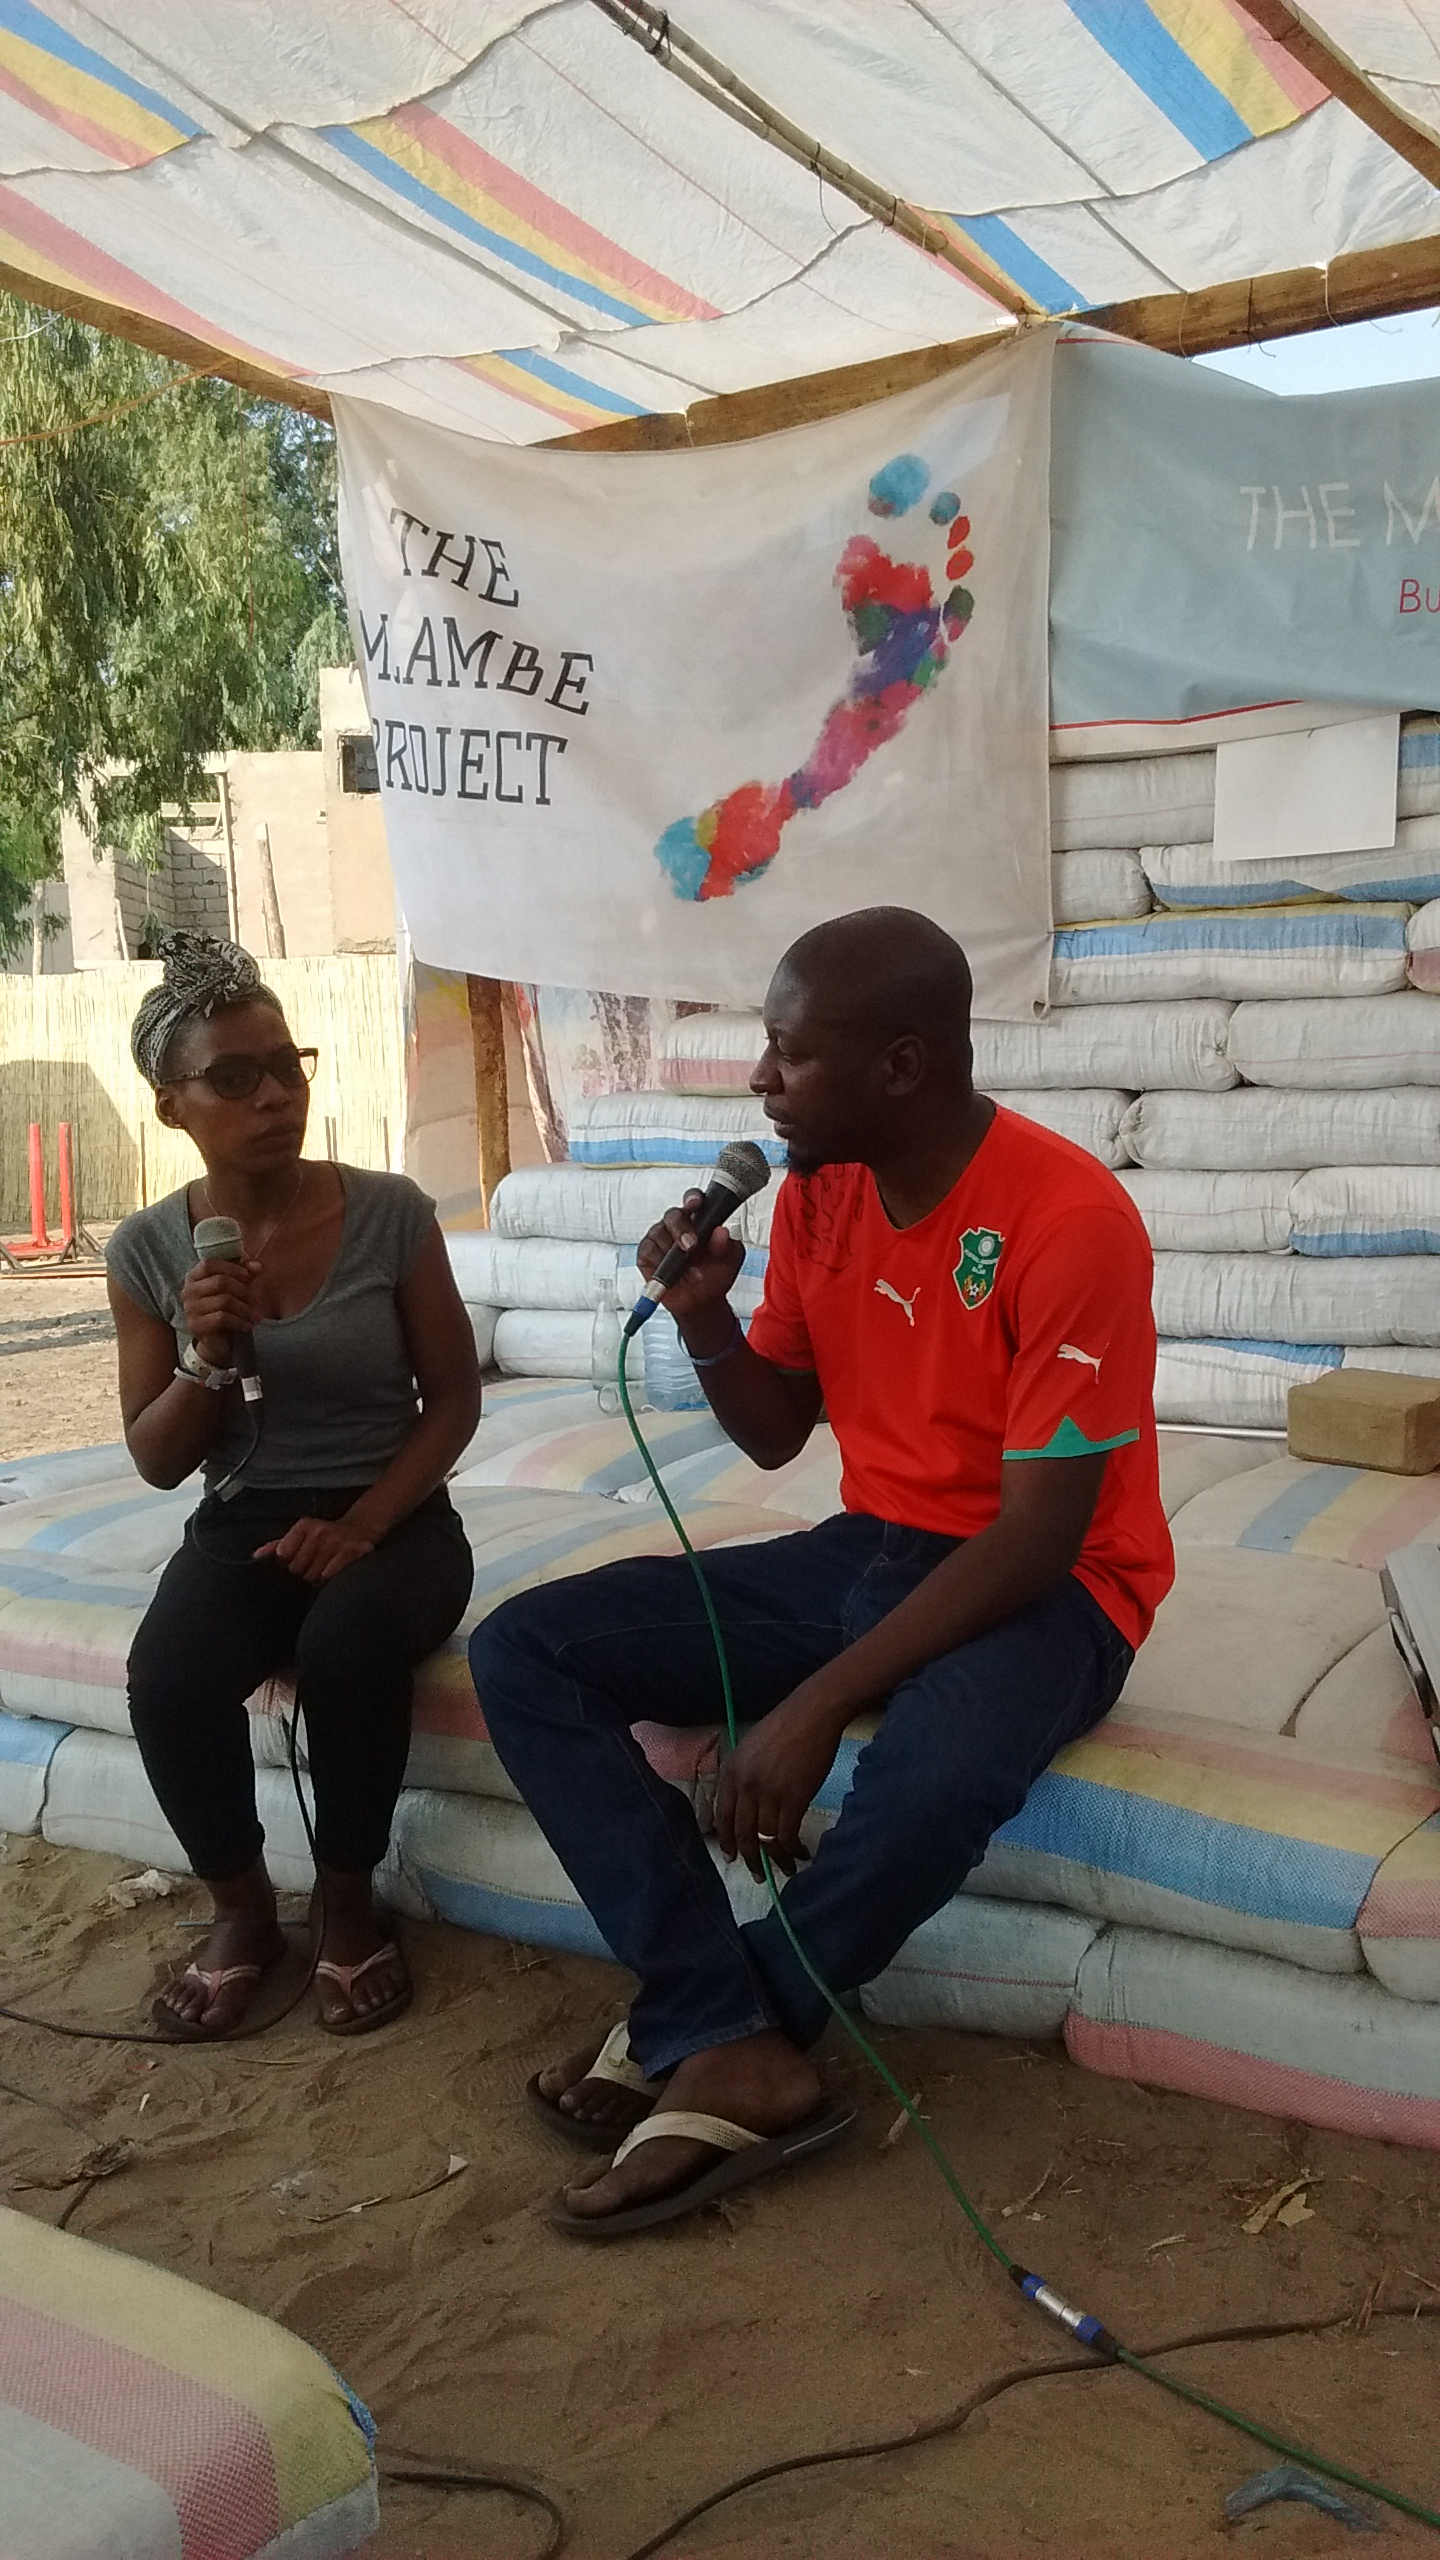 Malawian poet Q Malewezi shared his personal journey in the arts and his vision for Kweza Arts Centre, a collaborative arts centre he's developing in Lilongwe.